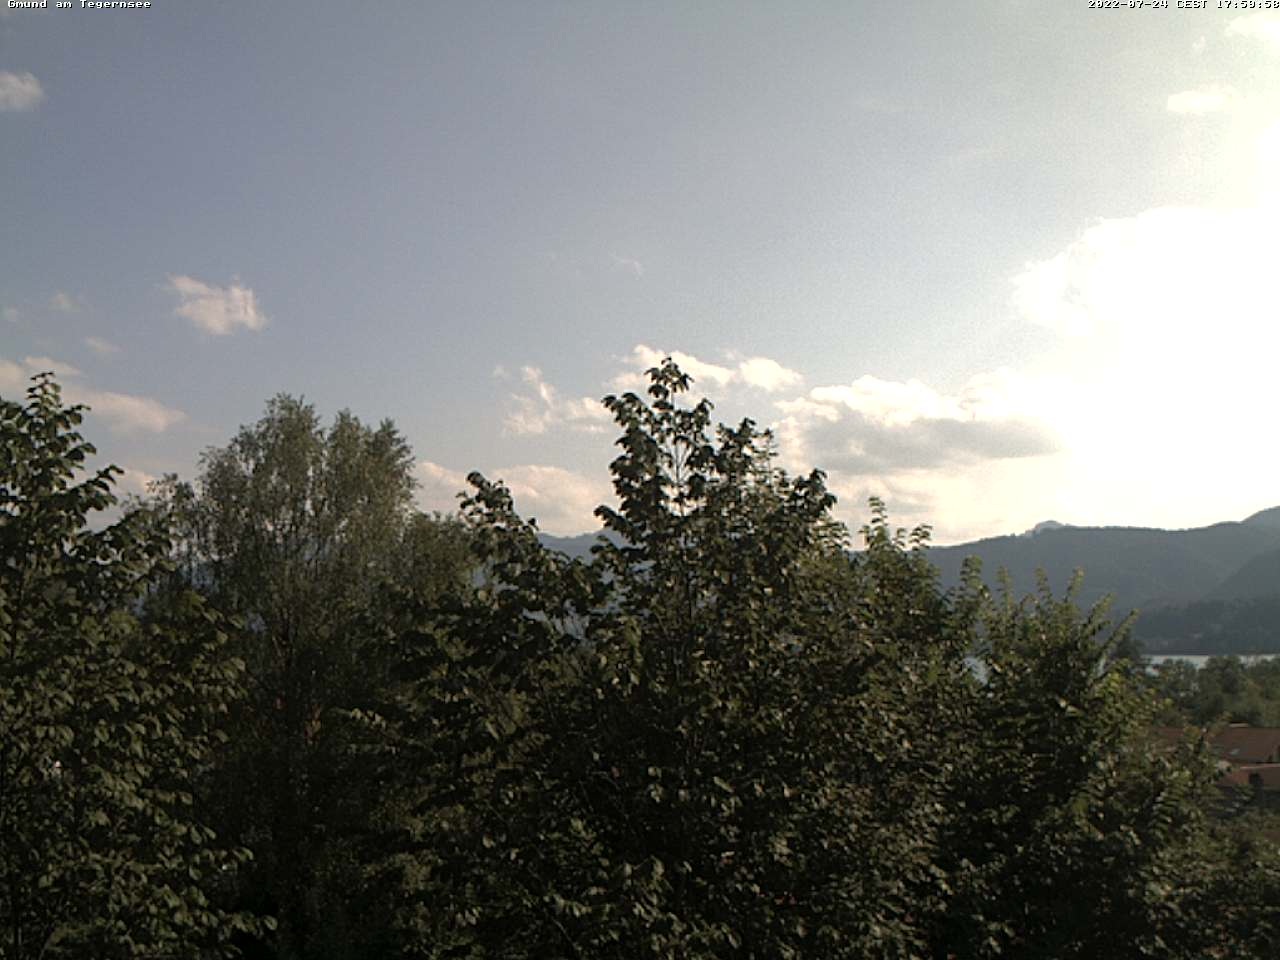 Webcam Gmund am Tegernsee